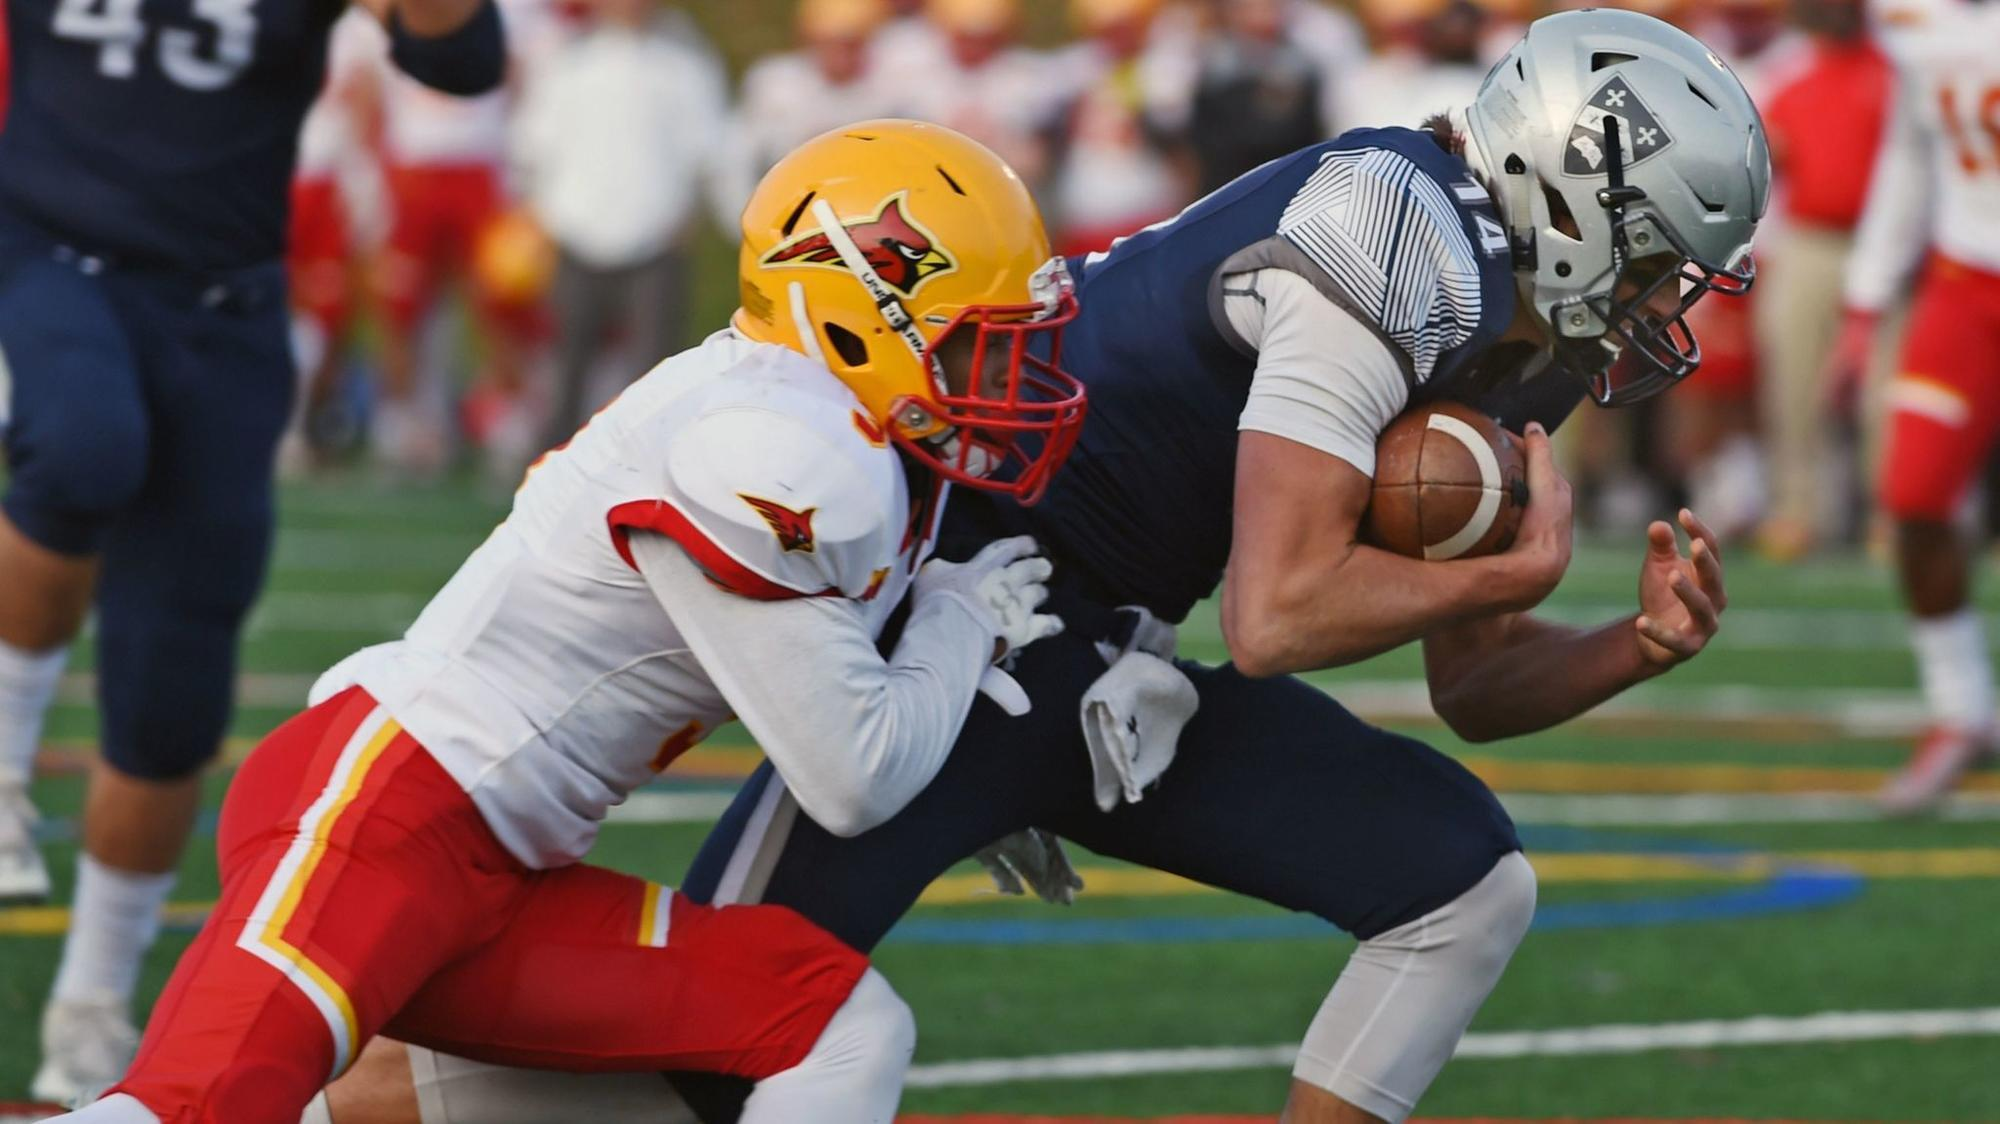 Varsity football: By The Numbers for Week 11